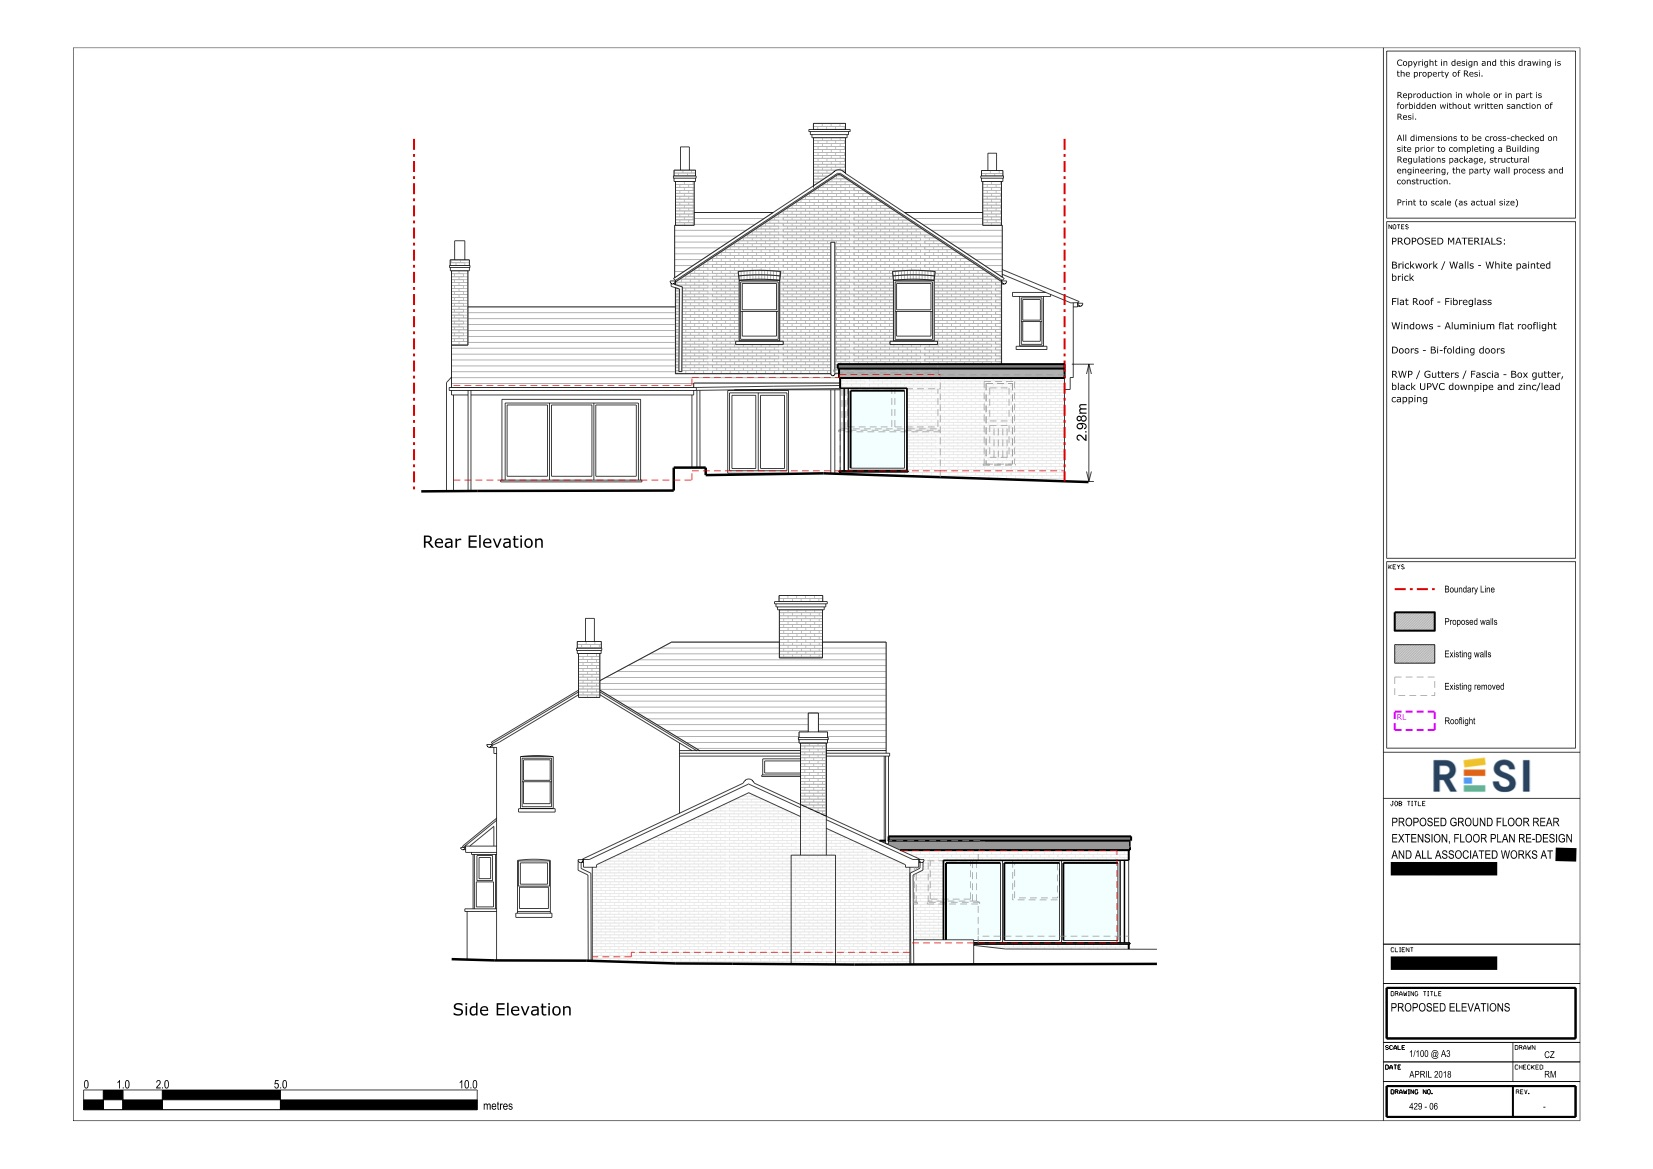 Architectural drawings 3   elevations